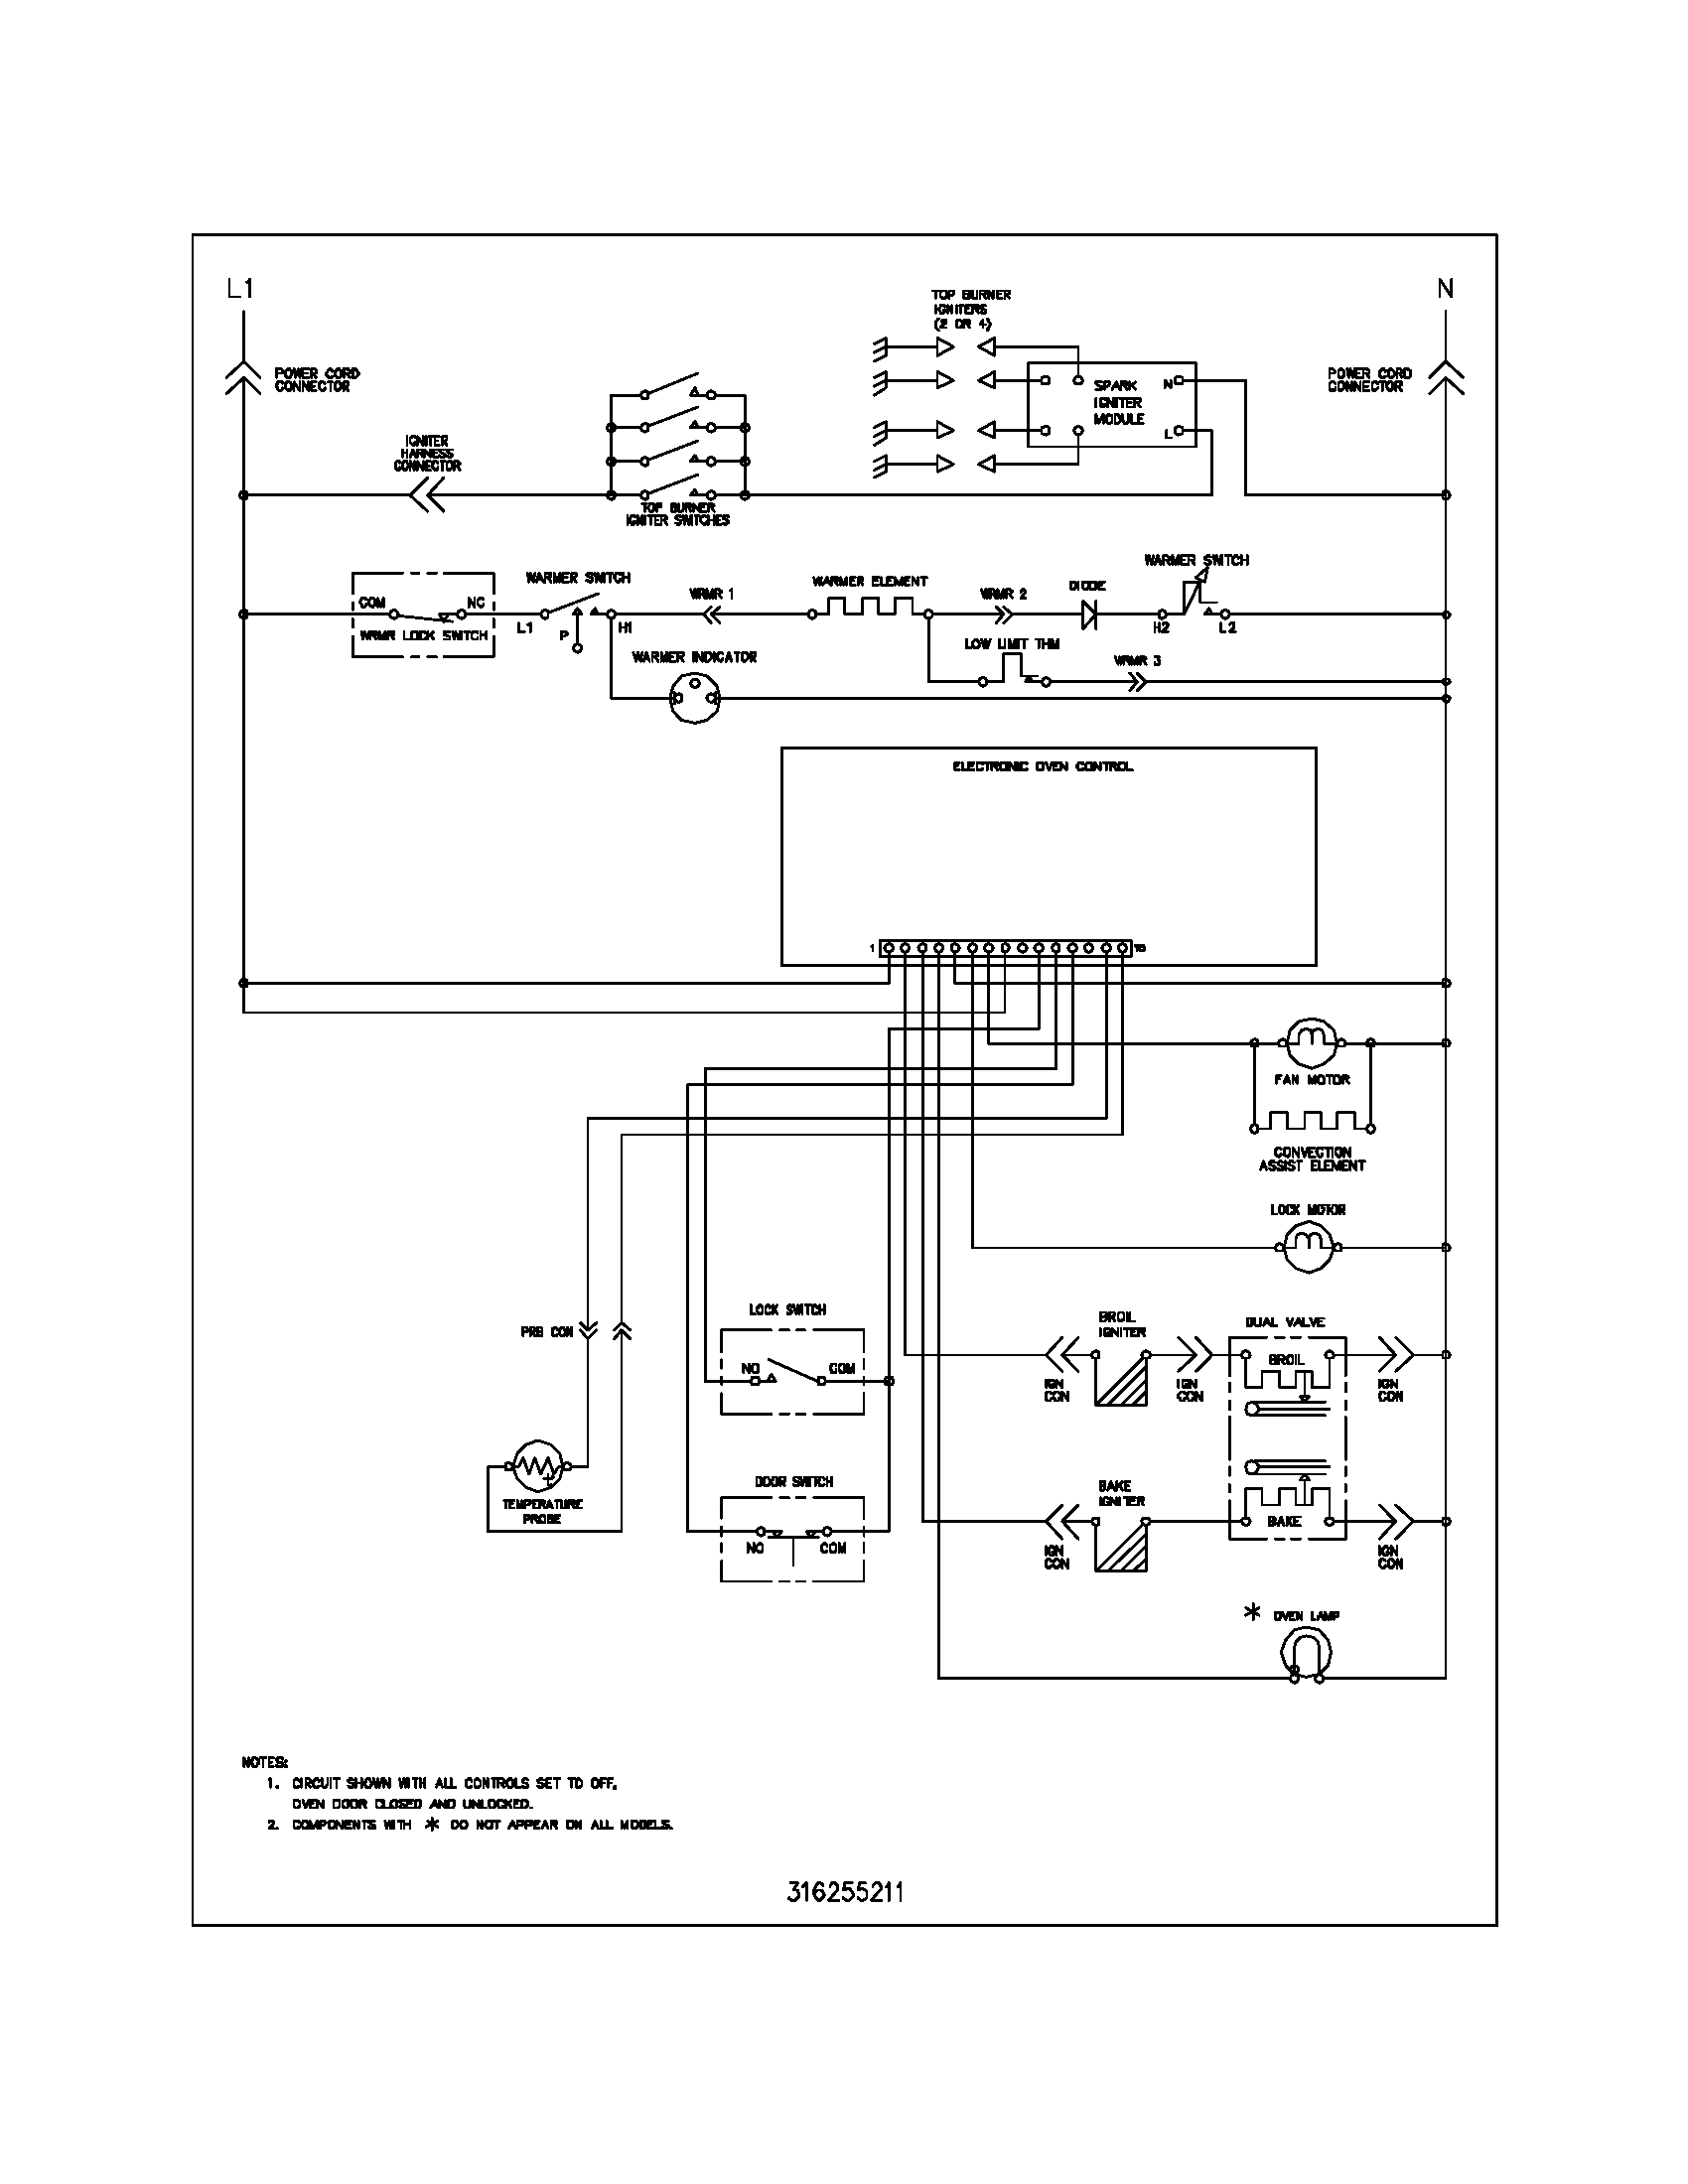 Wiring diagram for freezer thermostat free download wiring diagram free download wiring diagram frigidaire plgf389ccc gas range timer stove clocks and appliance of wiring swarovskicordoba Image collections